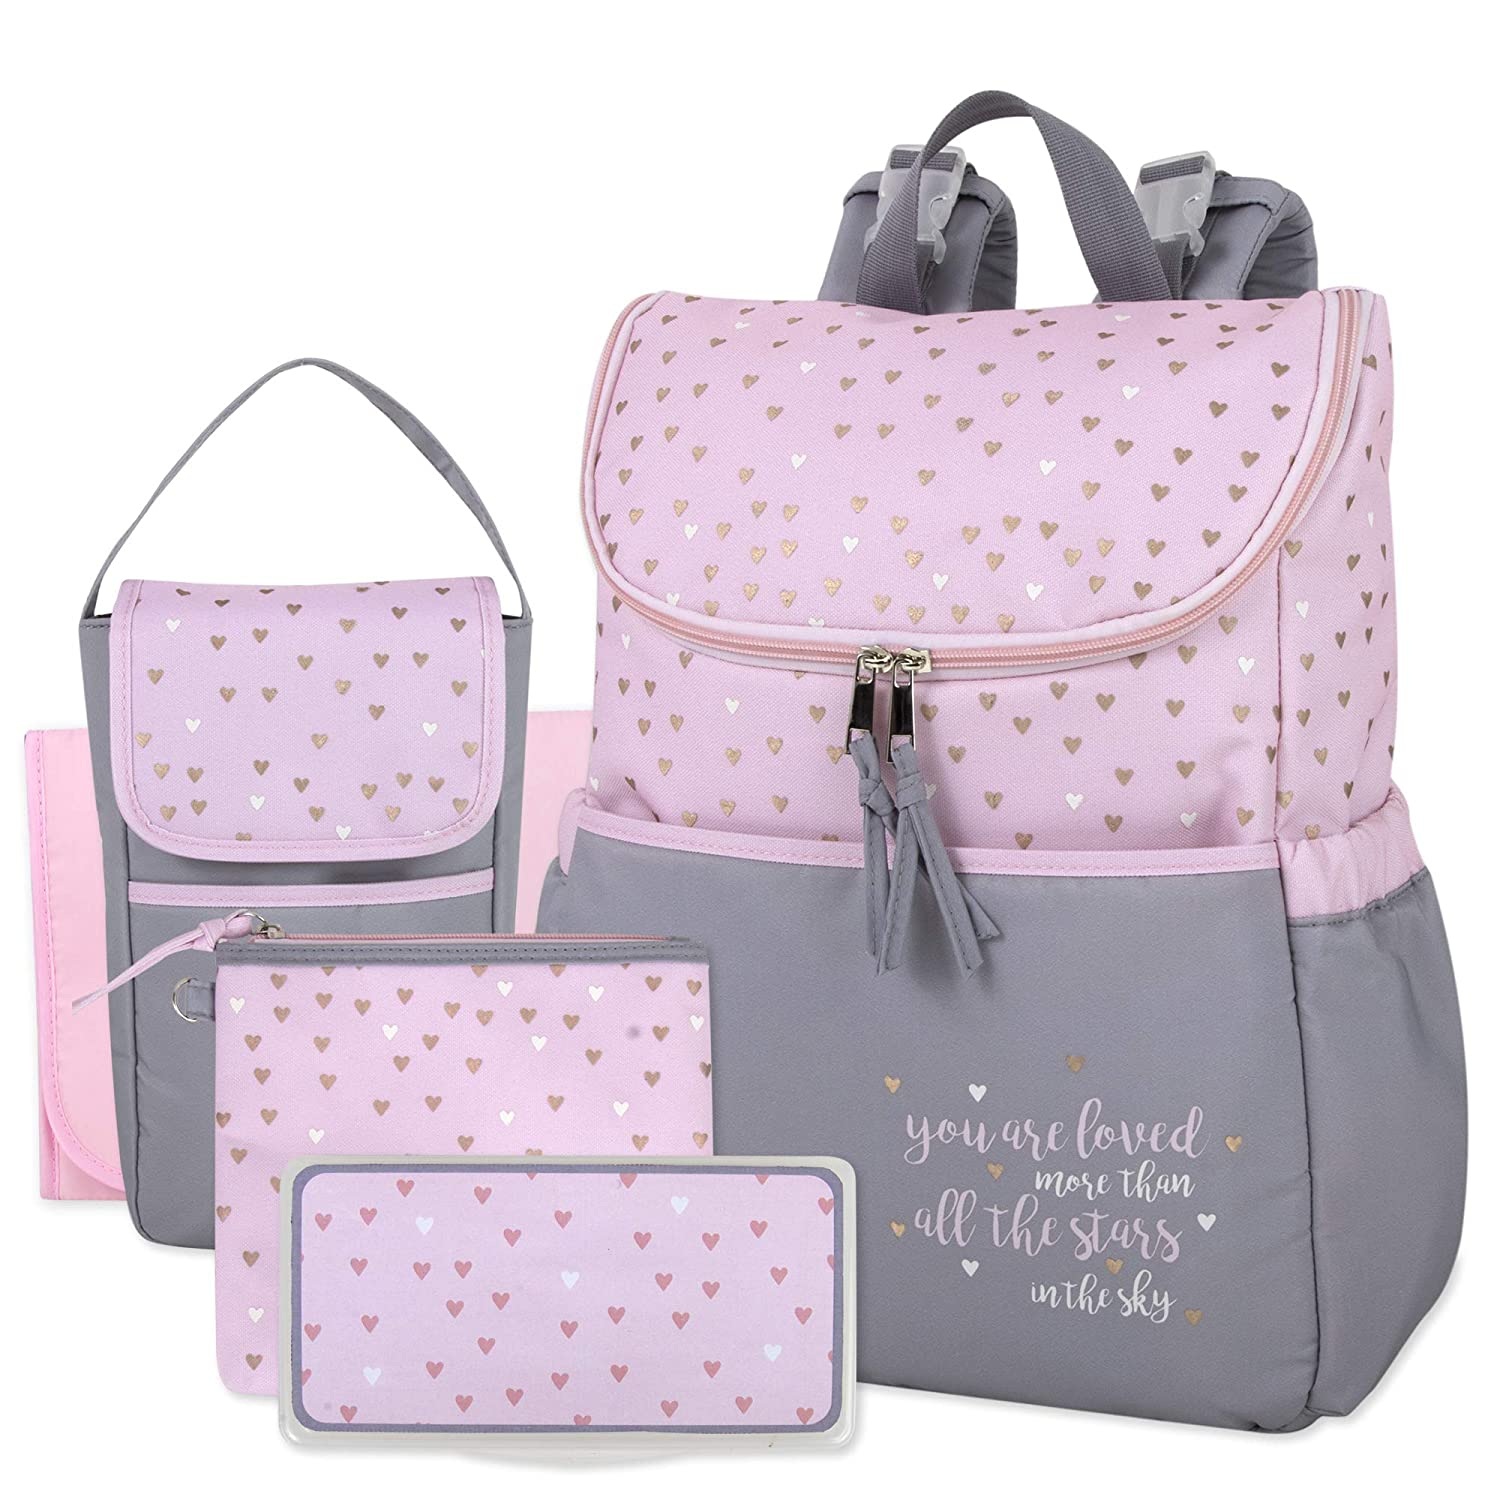 Diaper Bag Backpack 5 Piece Set with Sun, Moon, and Stars, Wipes Pocket, Stroller Straps, Dirty Diaper Pouch, Changing Pad (Grey/Pink Backpack)